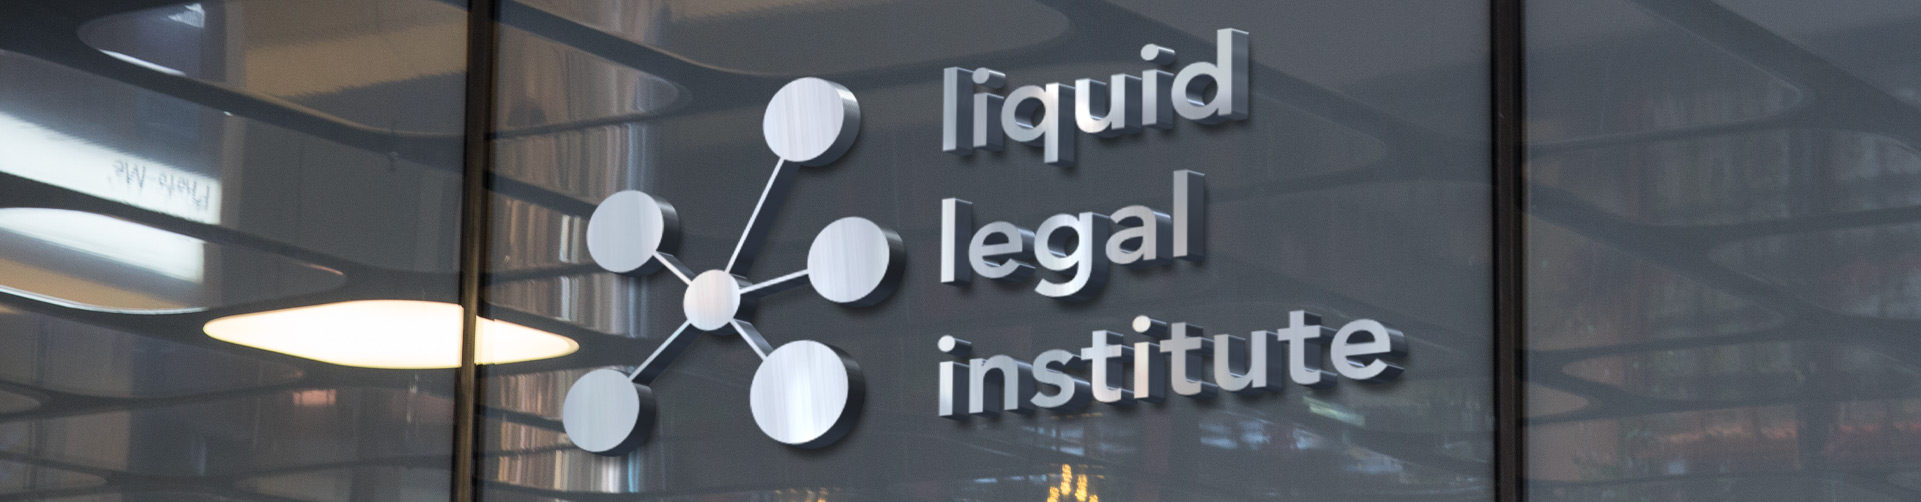 photo of iron company logo of liquid legal institute on a wall